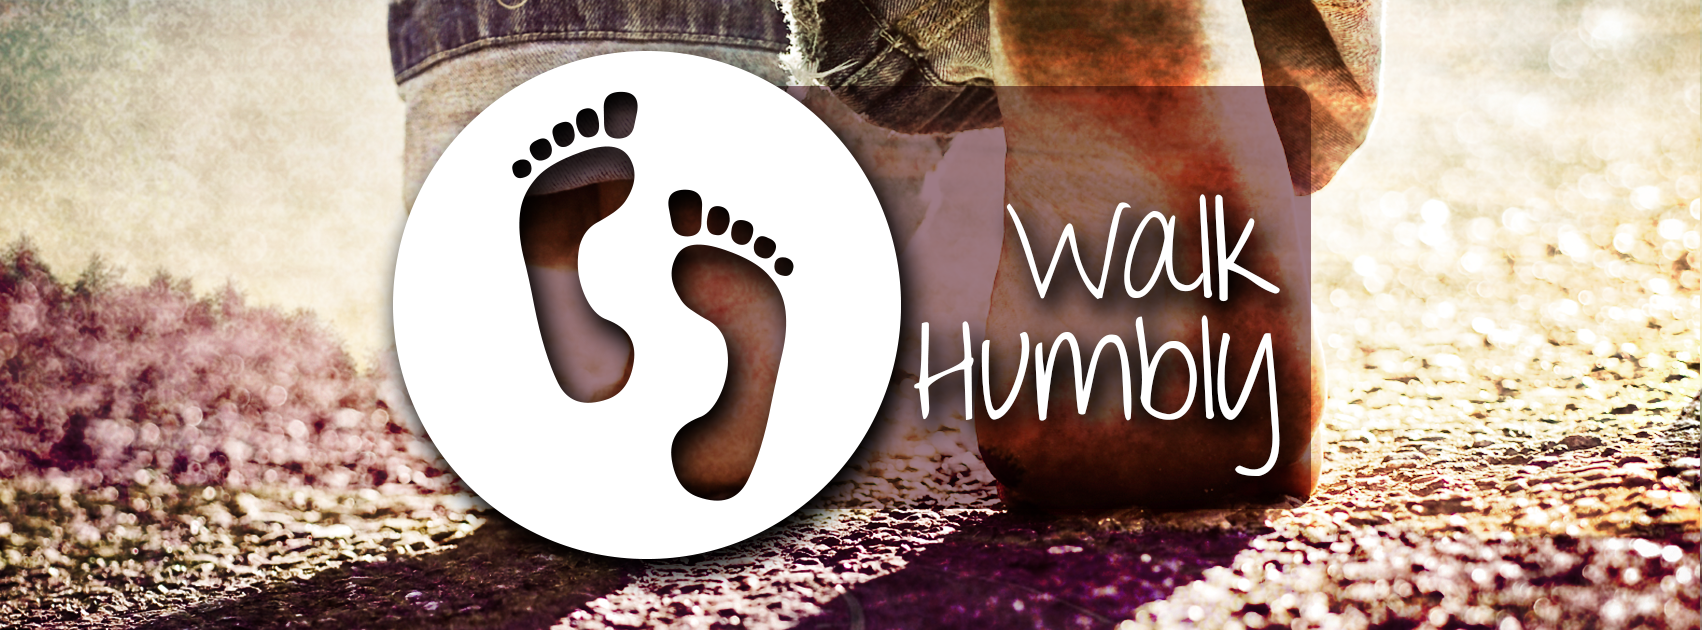 Walk Humbly, Part 2: With Your God